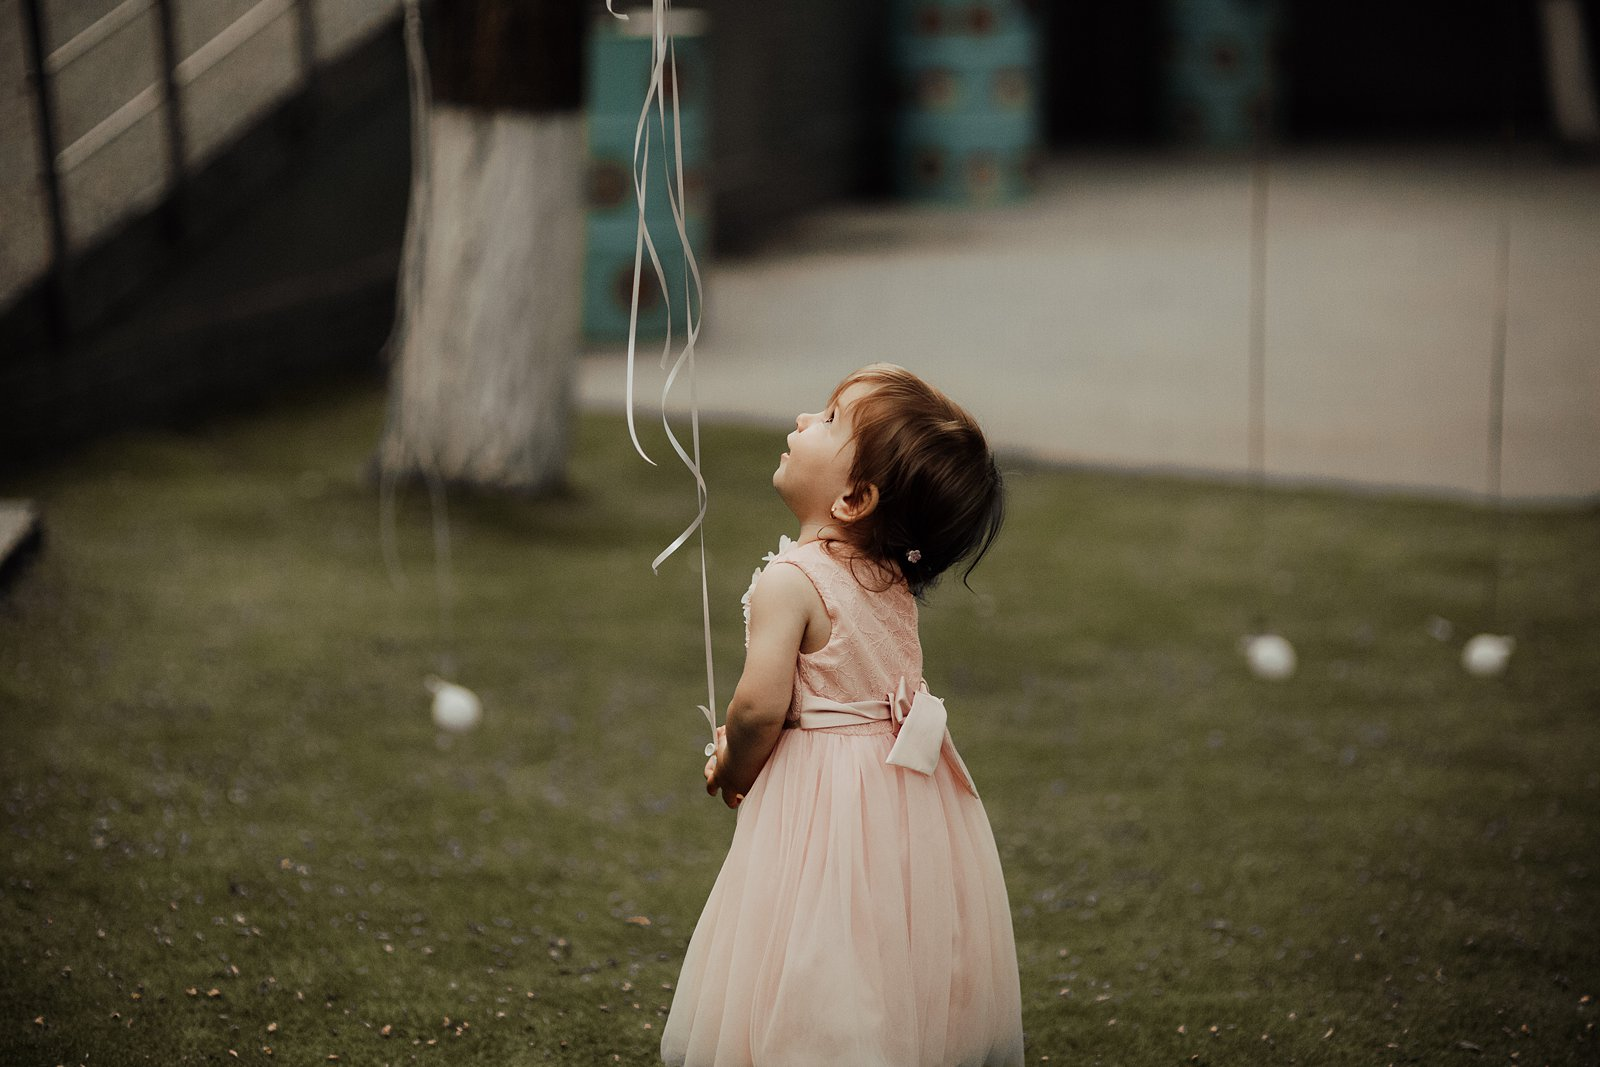 boho-wedding-girl-balloon-liaandlau